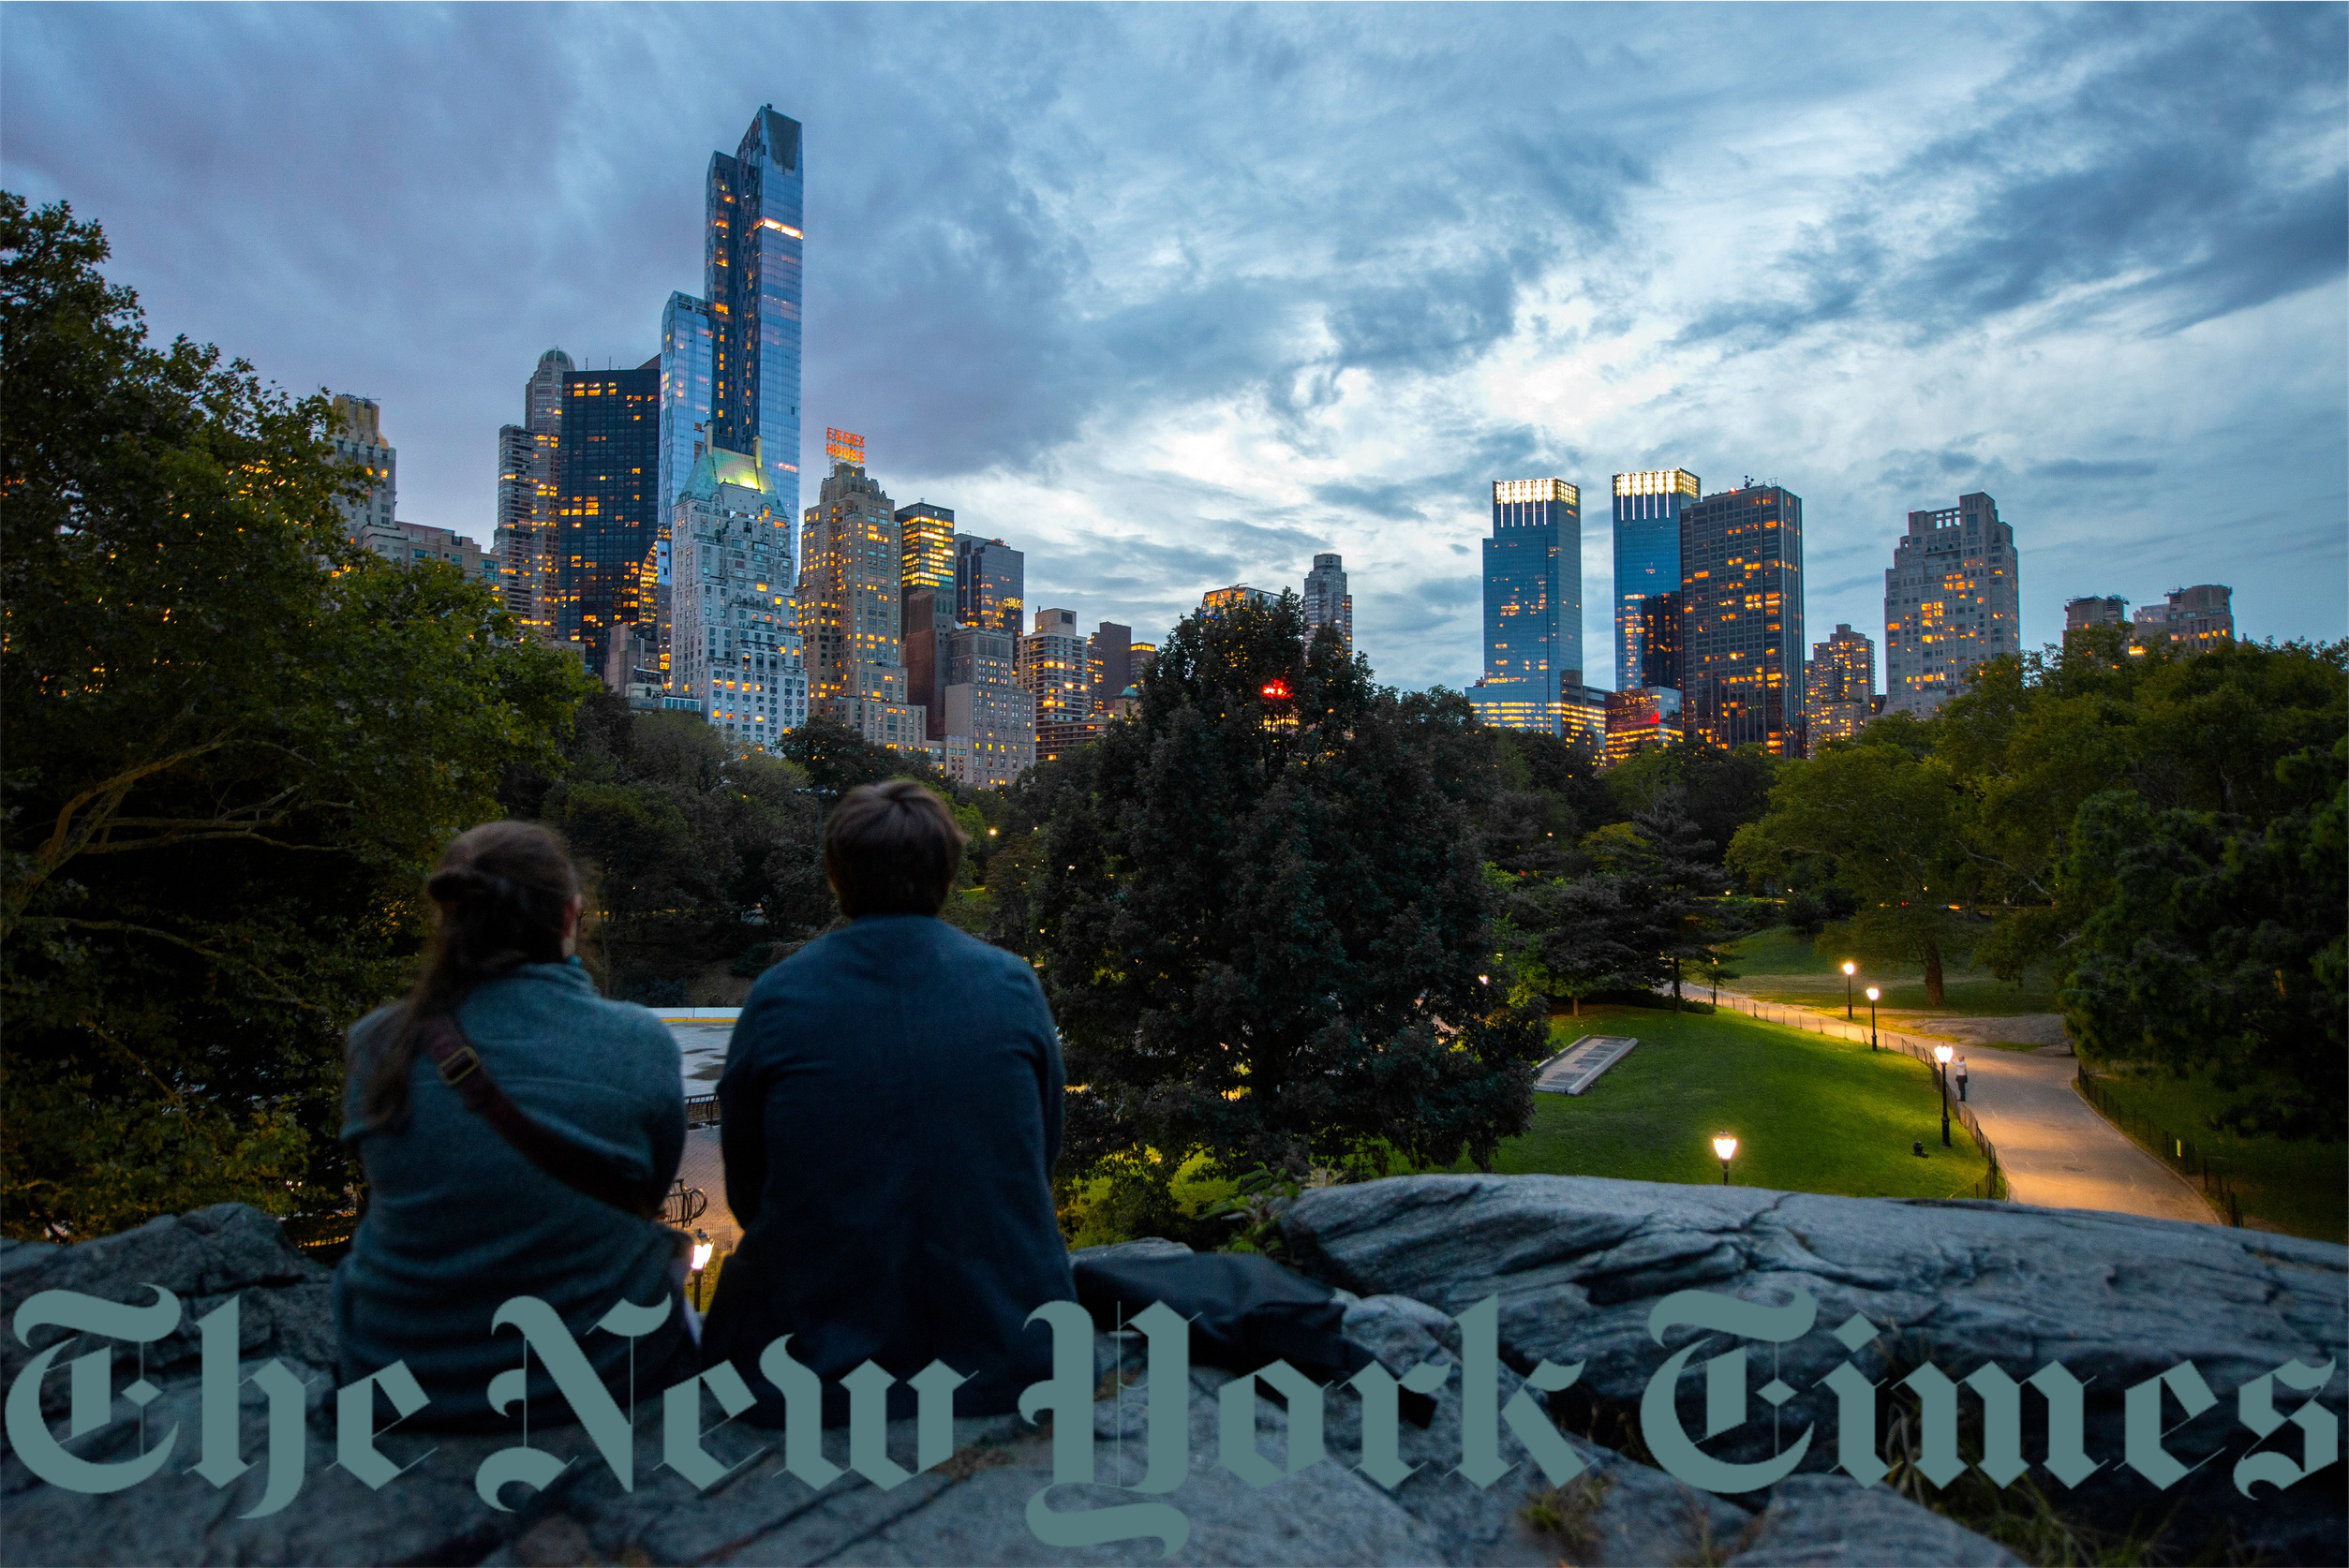 New York Times logo watermarked on a photo of a couple overlooking a park